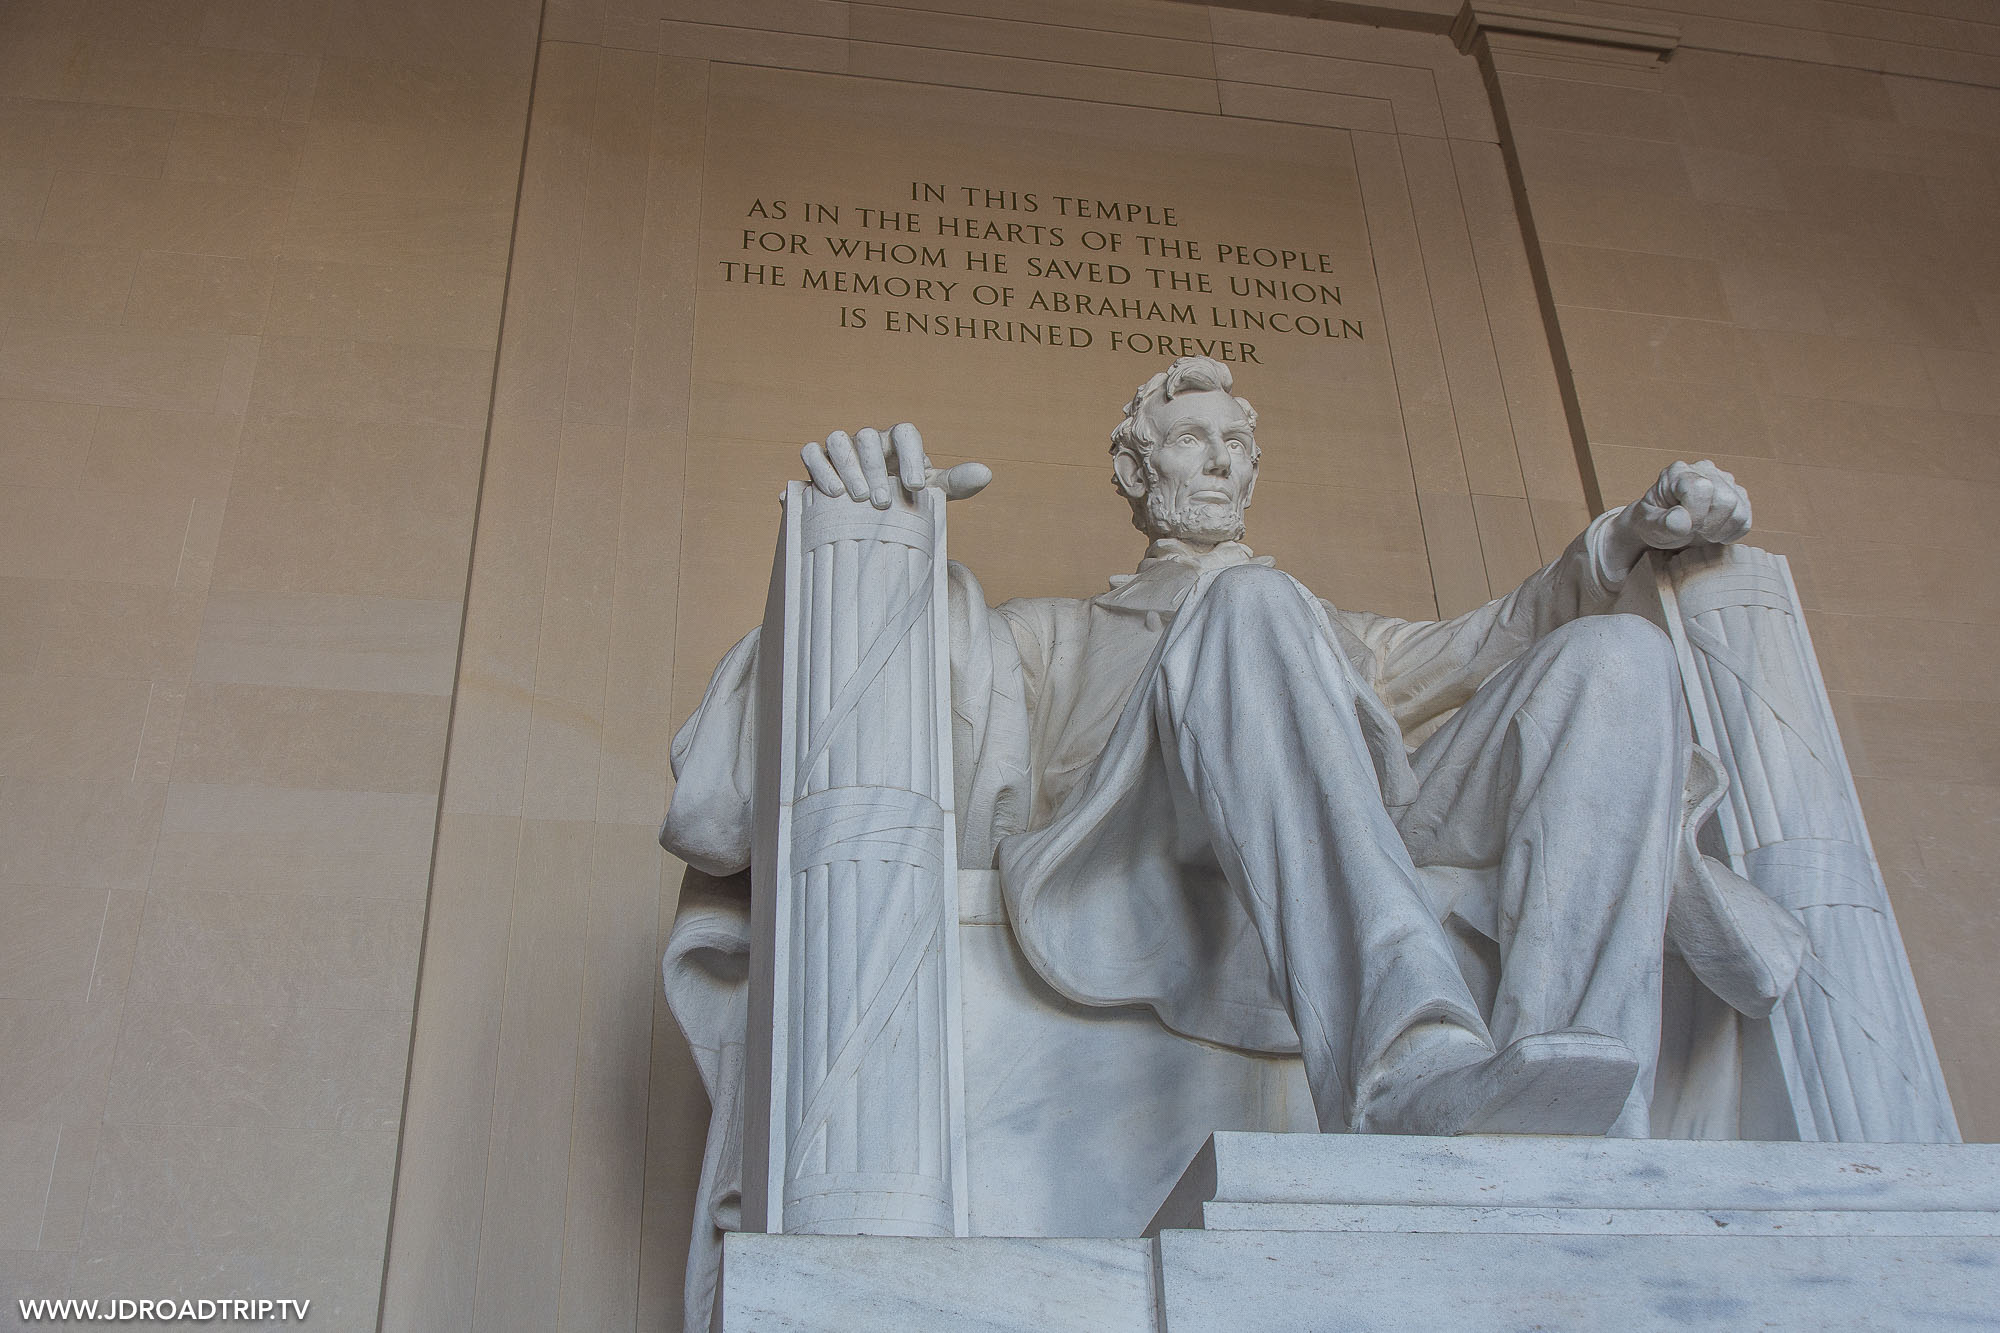 visiter Washington DC en 5 jours - Lincoln Memorial